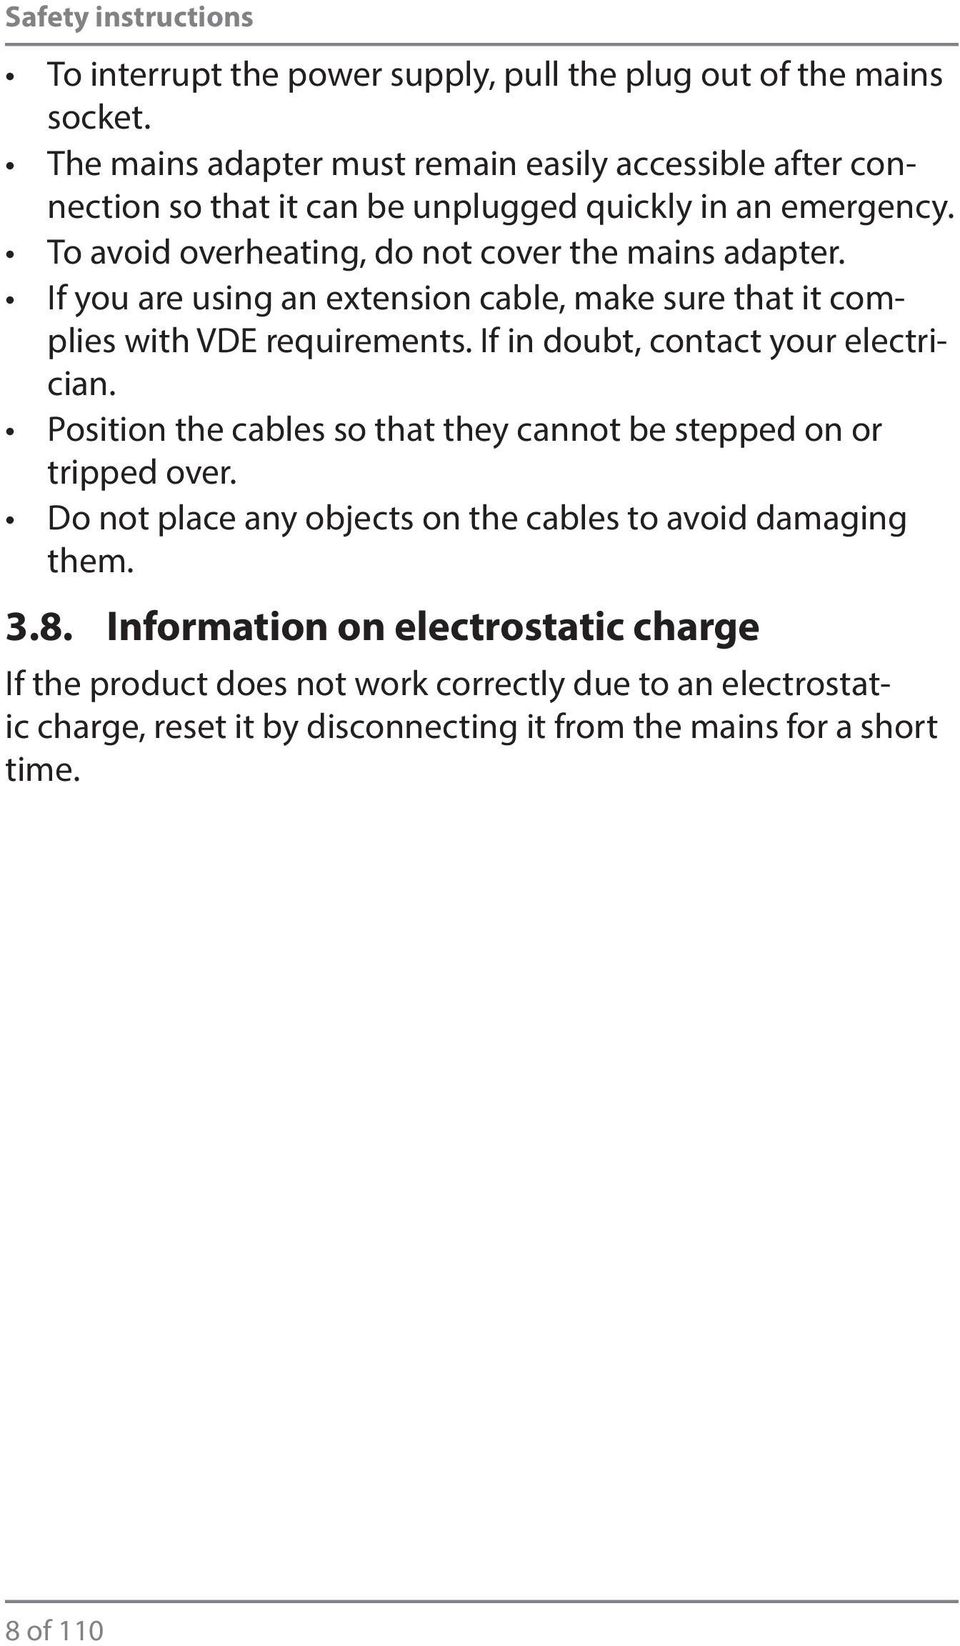 If you are using an extension cable, make sure that it complies with VDE requirements. If in doubt, contact your electrician.